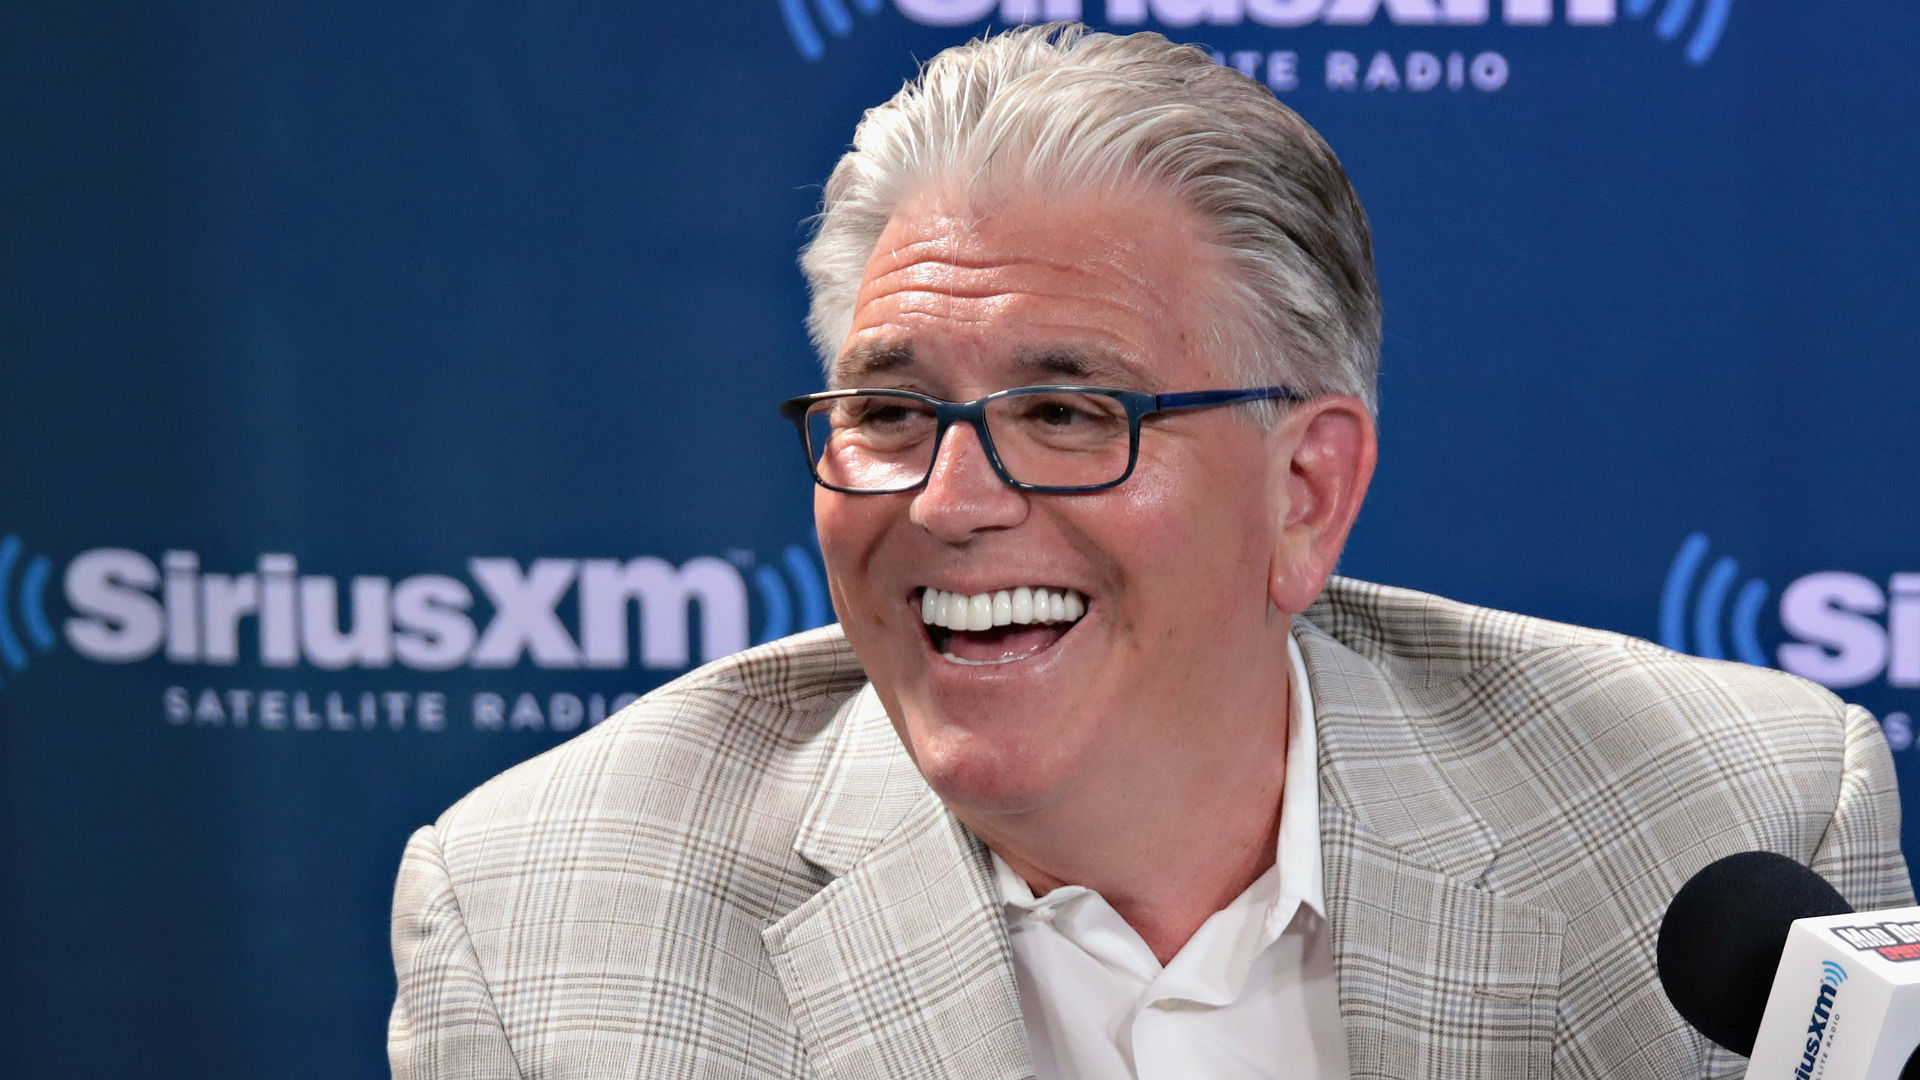 Mike Francesa Says He's Returning To WFAN